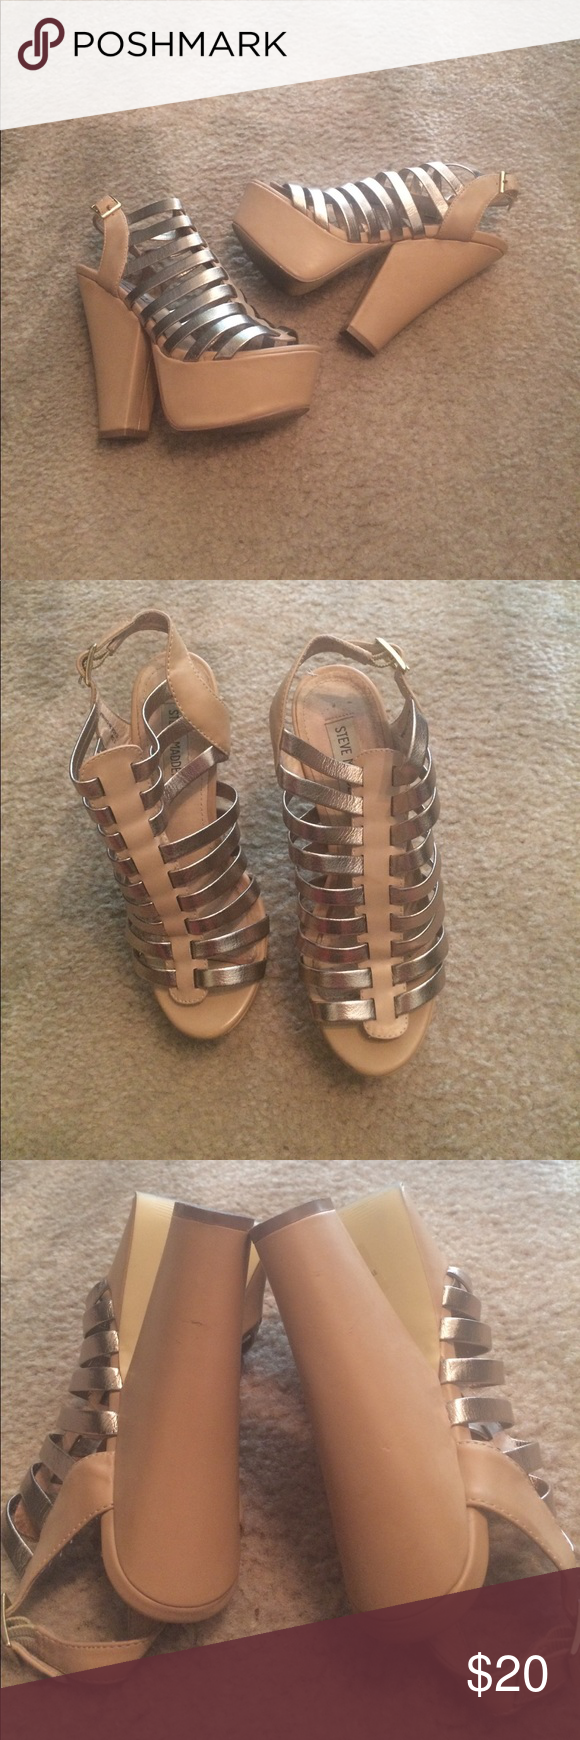 Steve Madden Platform heels Worn a couple of times little signs of wear still in great condition tan very comfortable Steve Madden Shoes Platforms